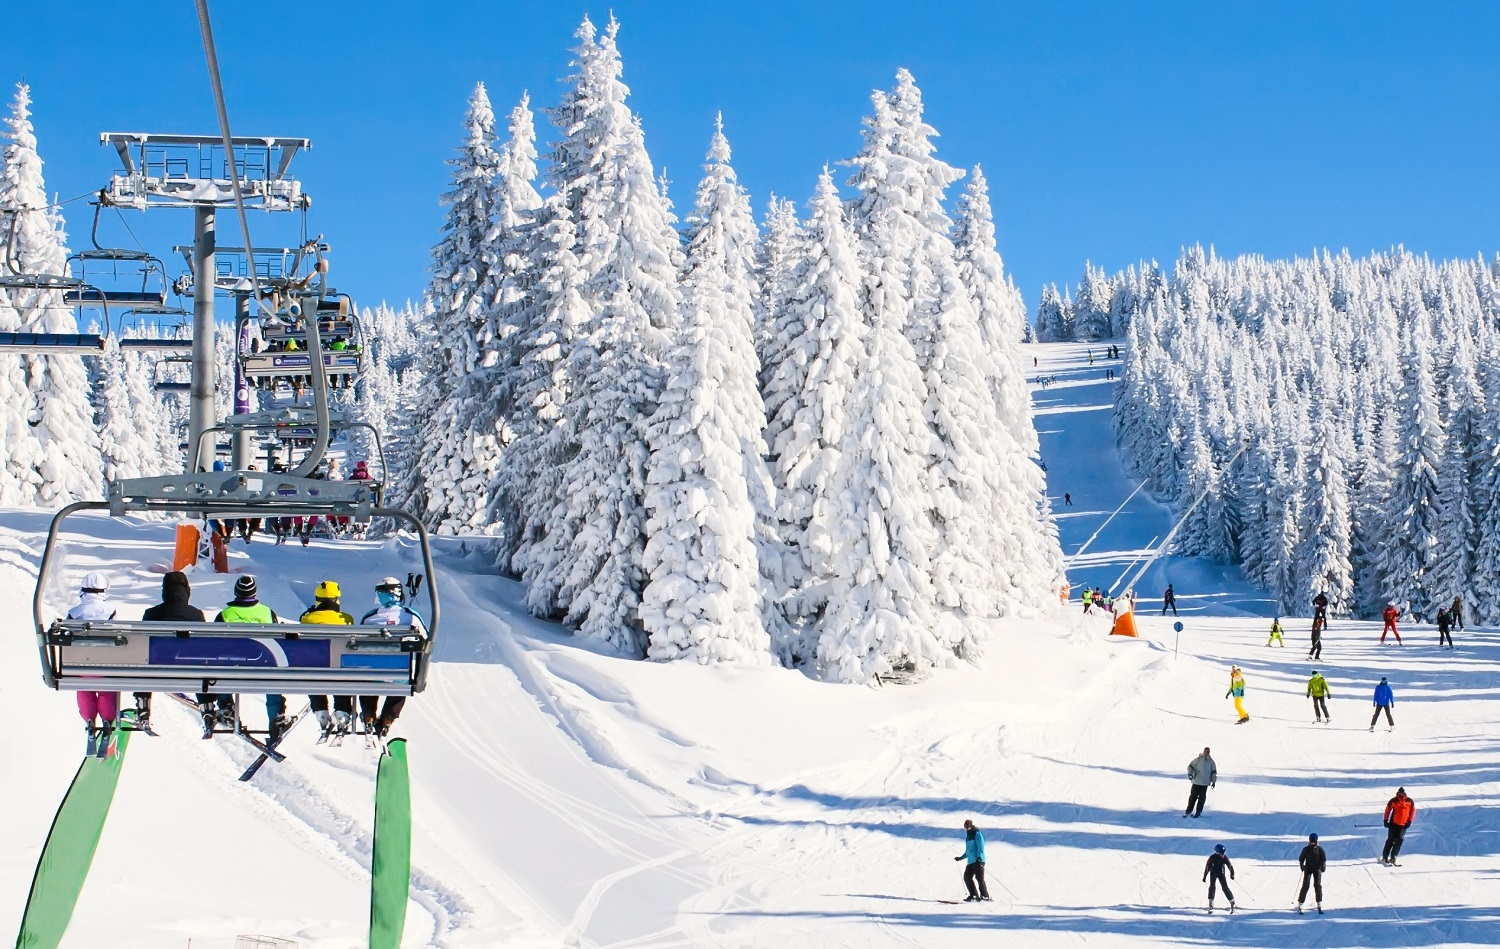 Early Warning and Public Address Systems for Ski Resorts